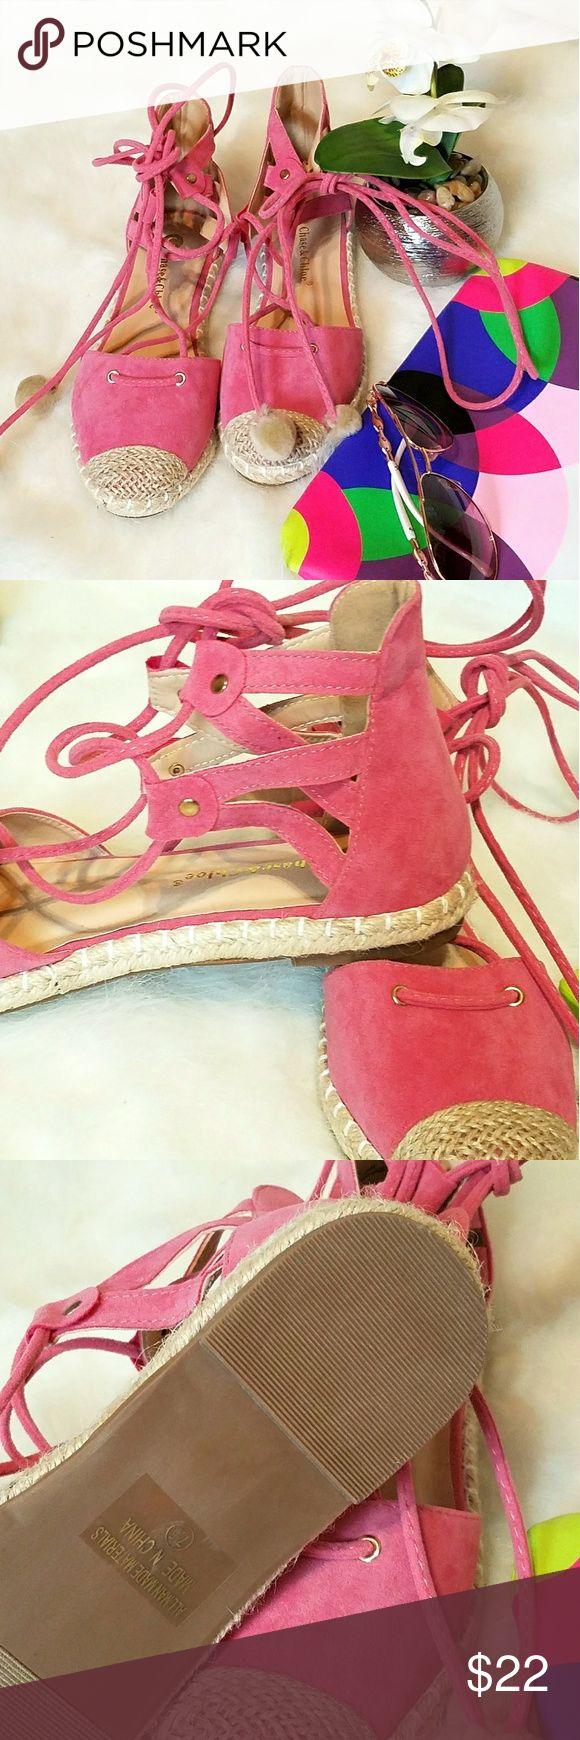 Pink Espadrilles Sandals Brand new, never worn.  Size 7.5.  Pom poms can be removed, I added them.  These could possible fit up to size 8.  Very comfortable & Summer ready sandals. Shoes Espadrilles